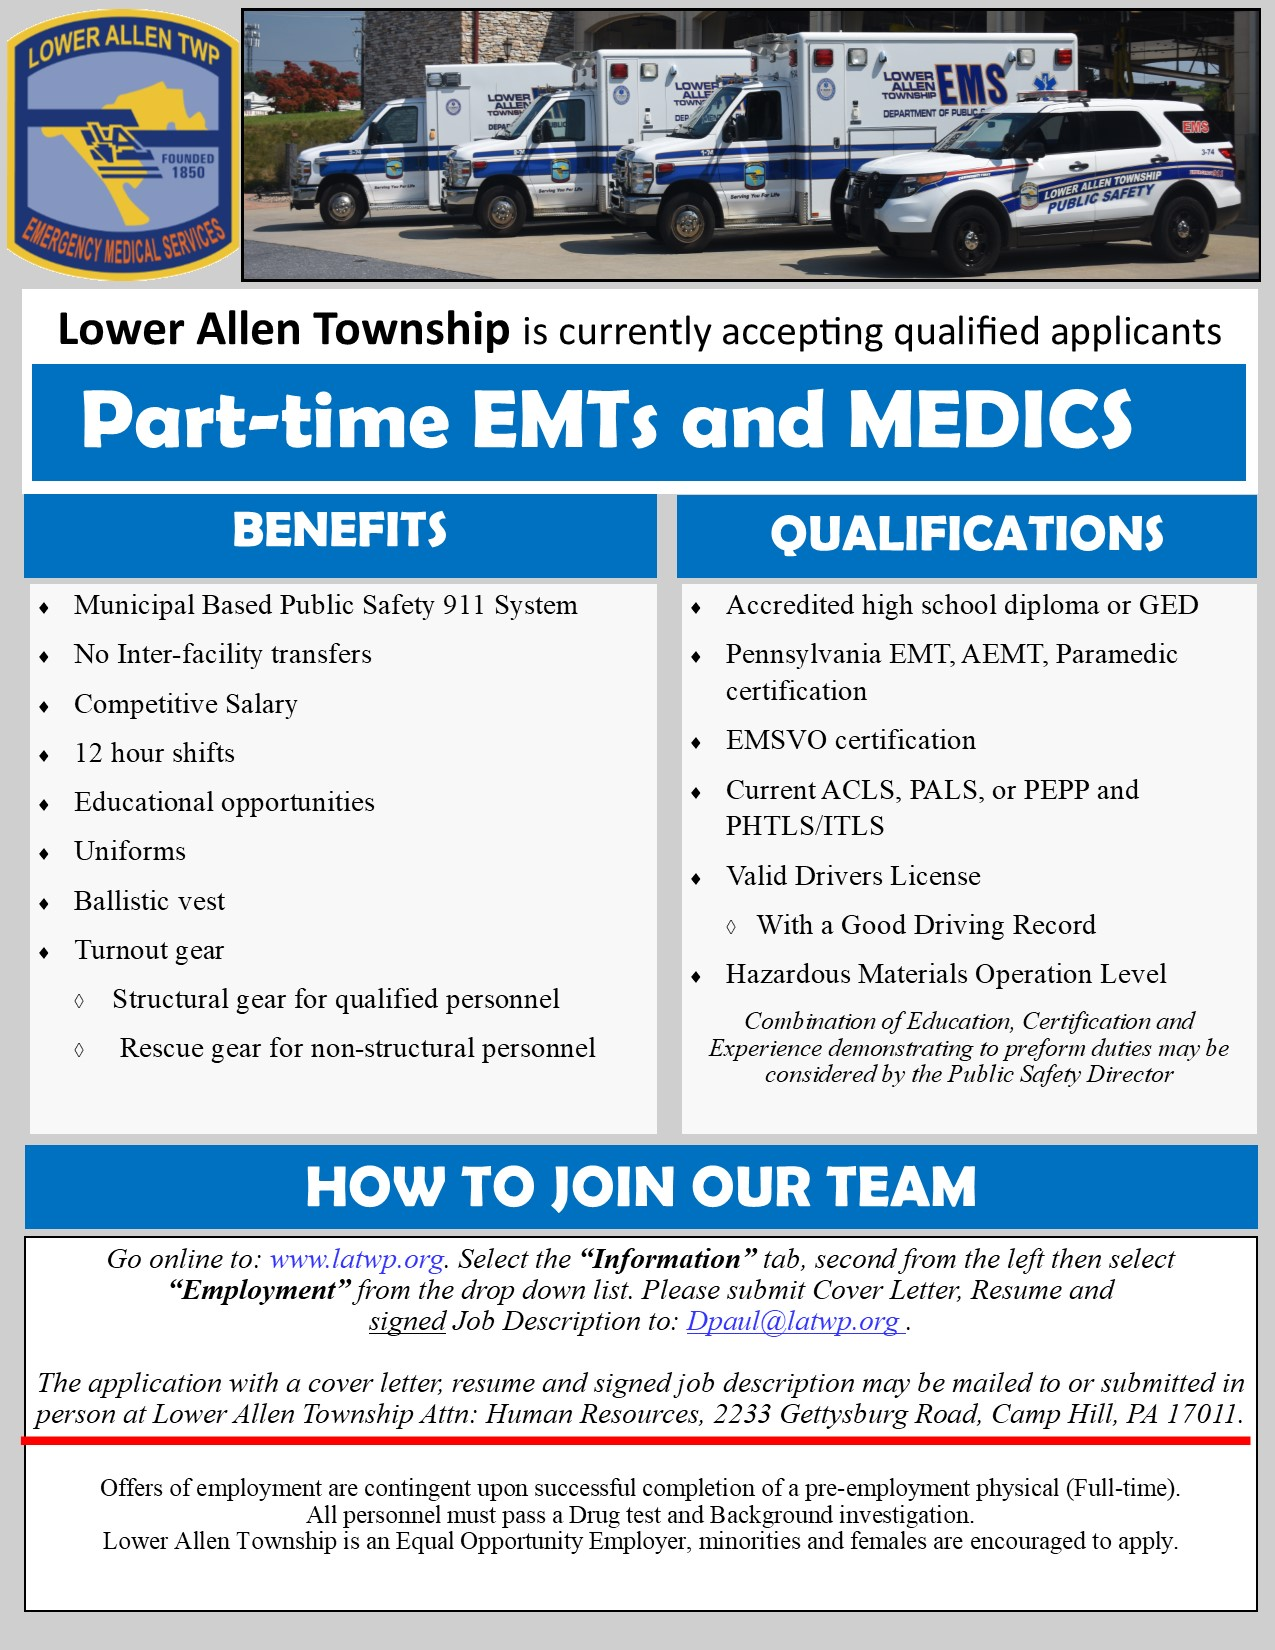 Part-time EMT and Medic Recruitment Flyer June